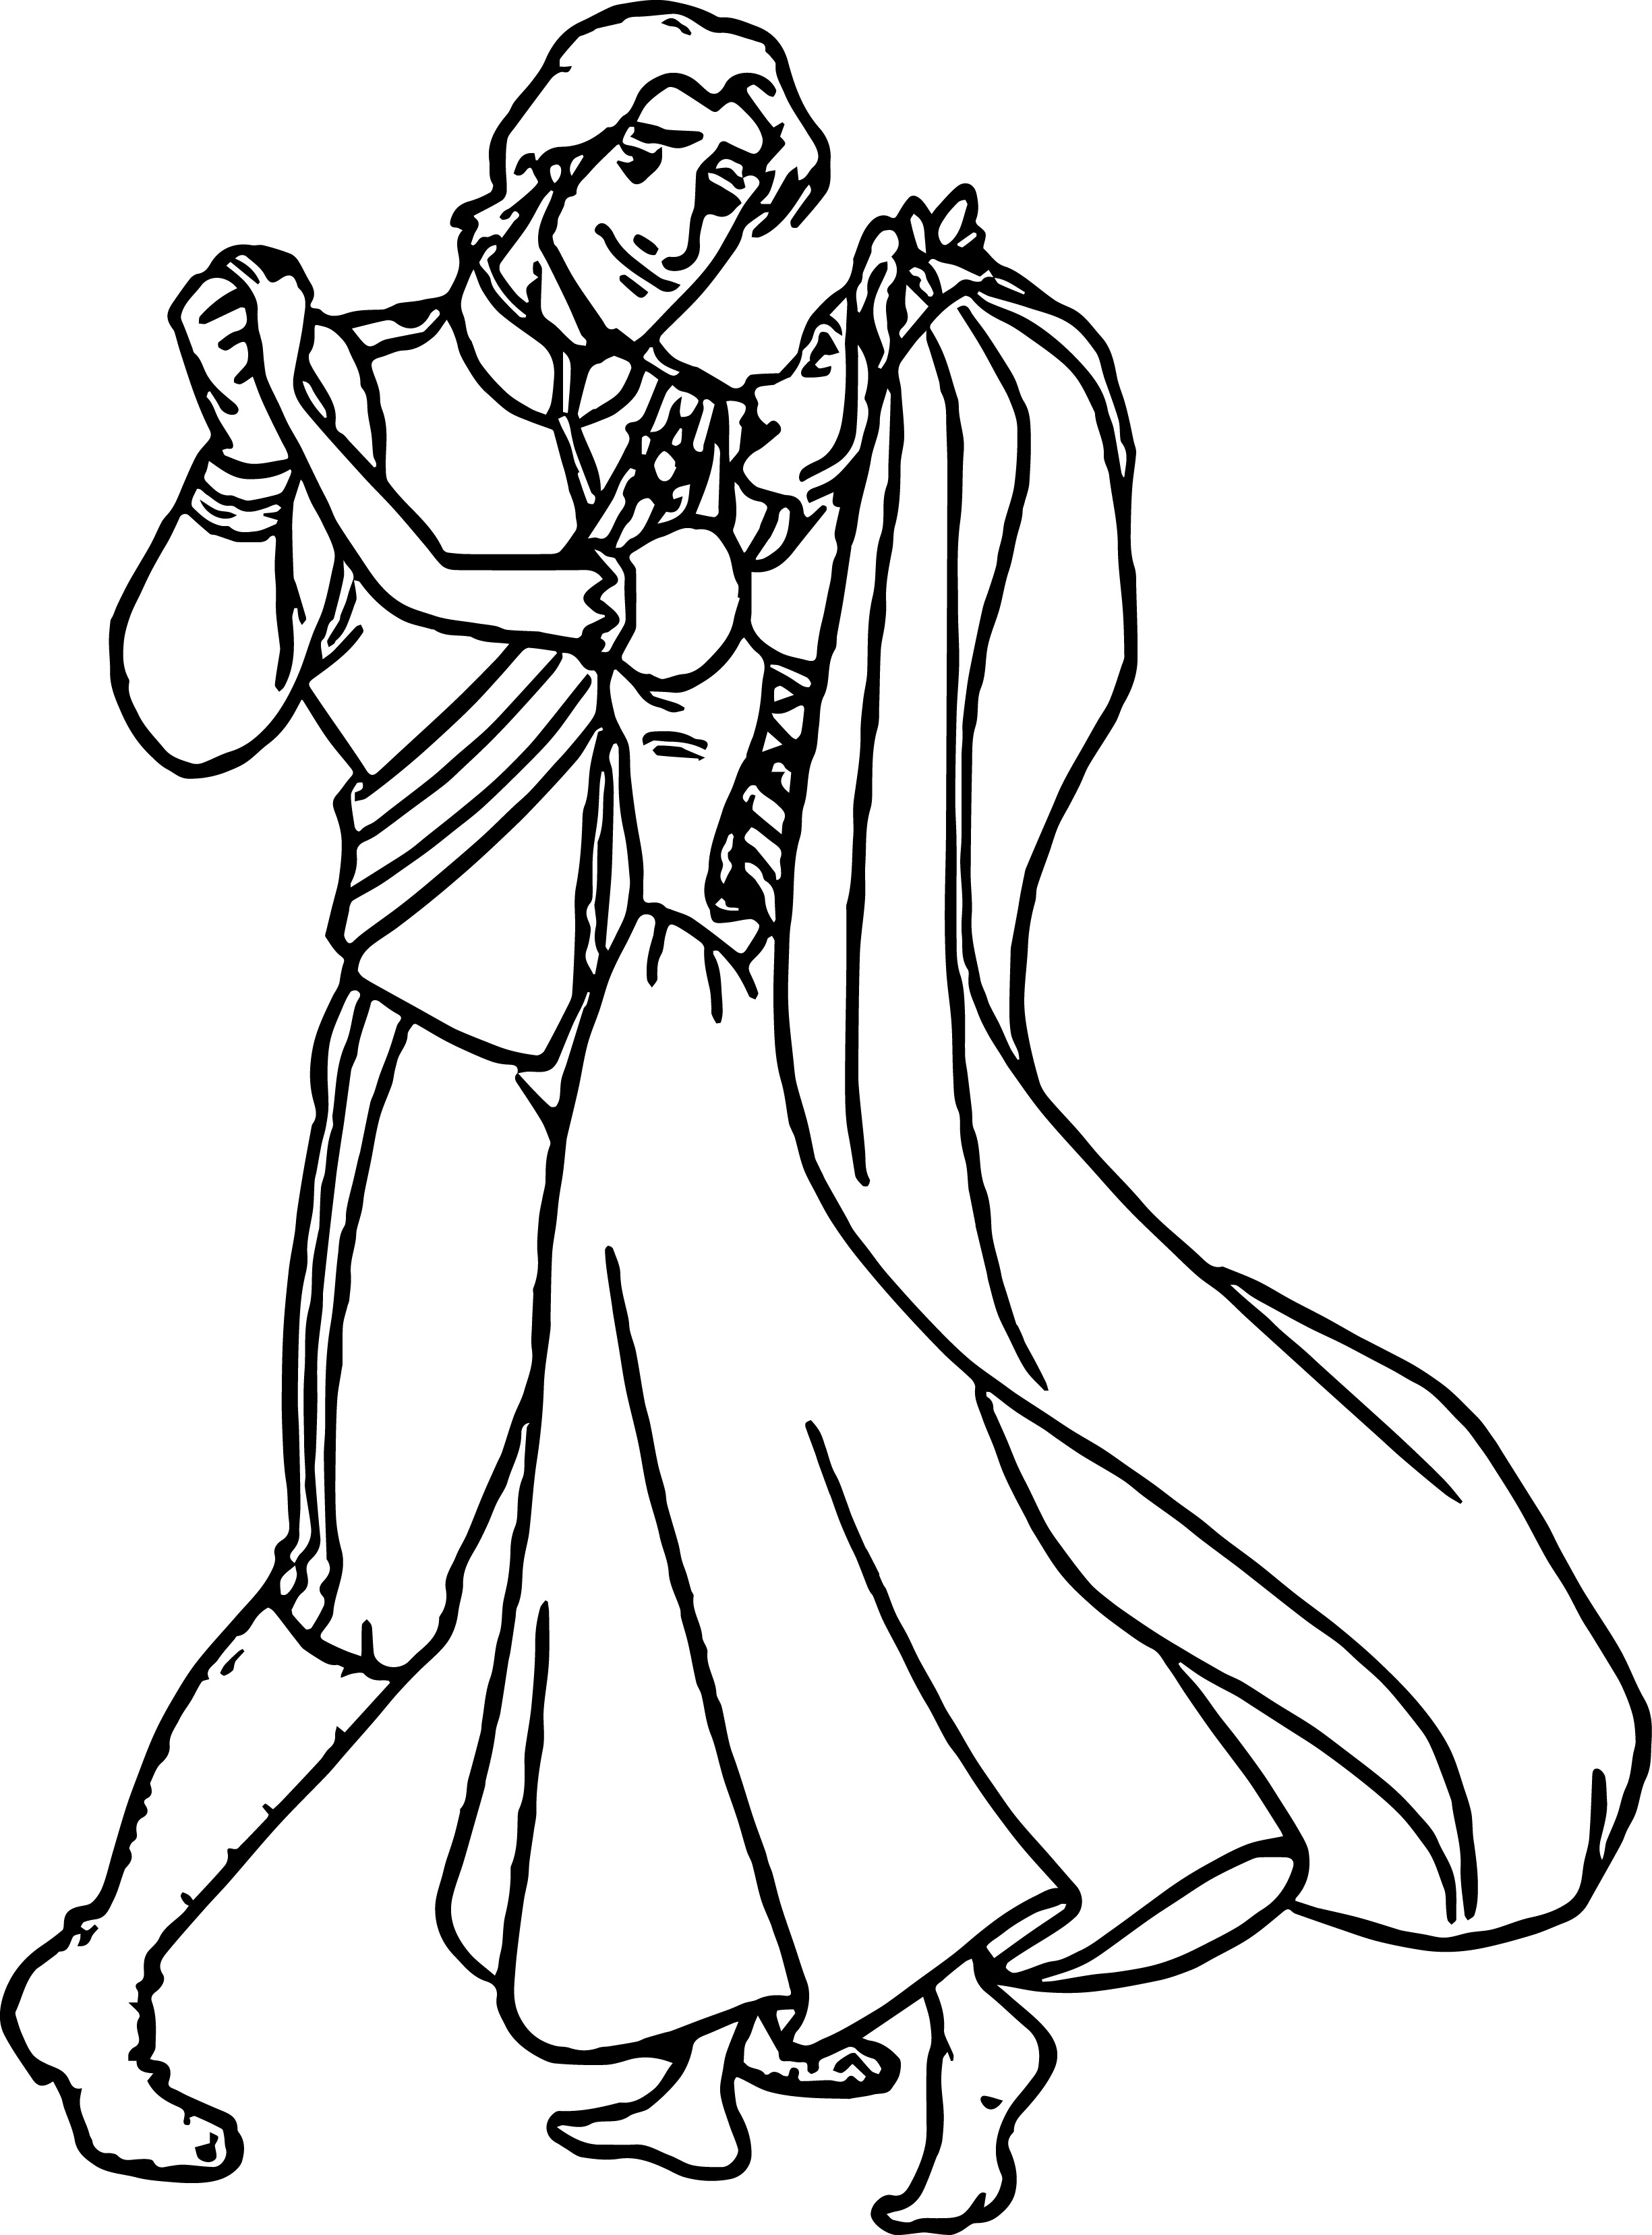 rapunzel and flynn wedding dance coloring page wecoloringpage